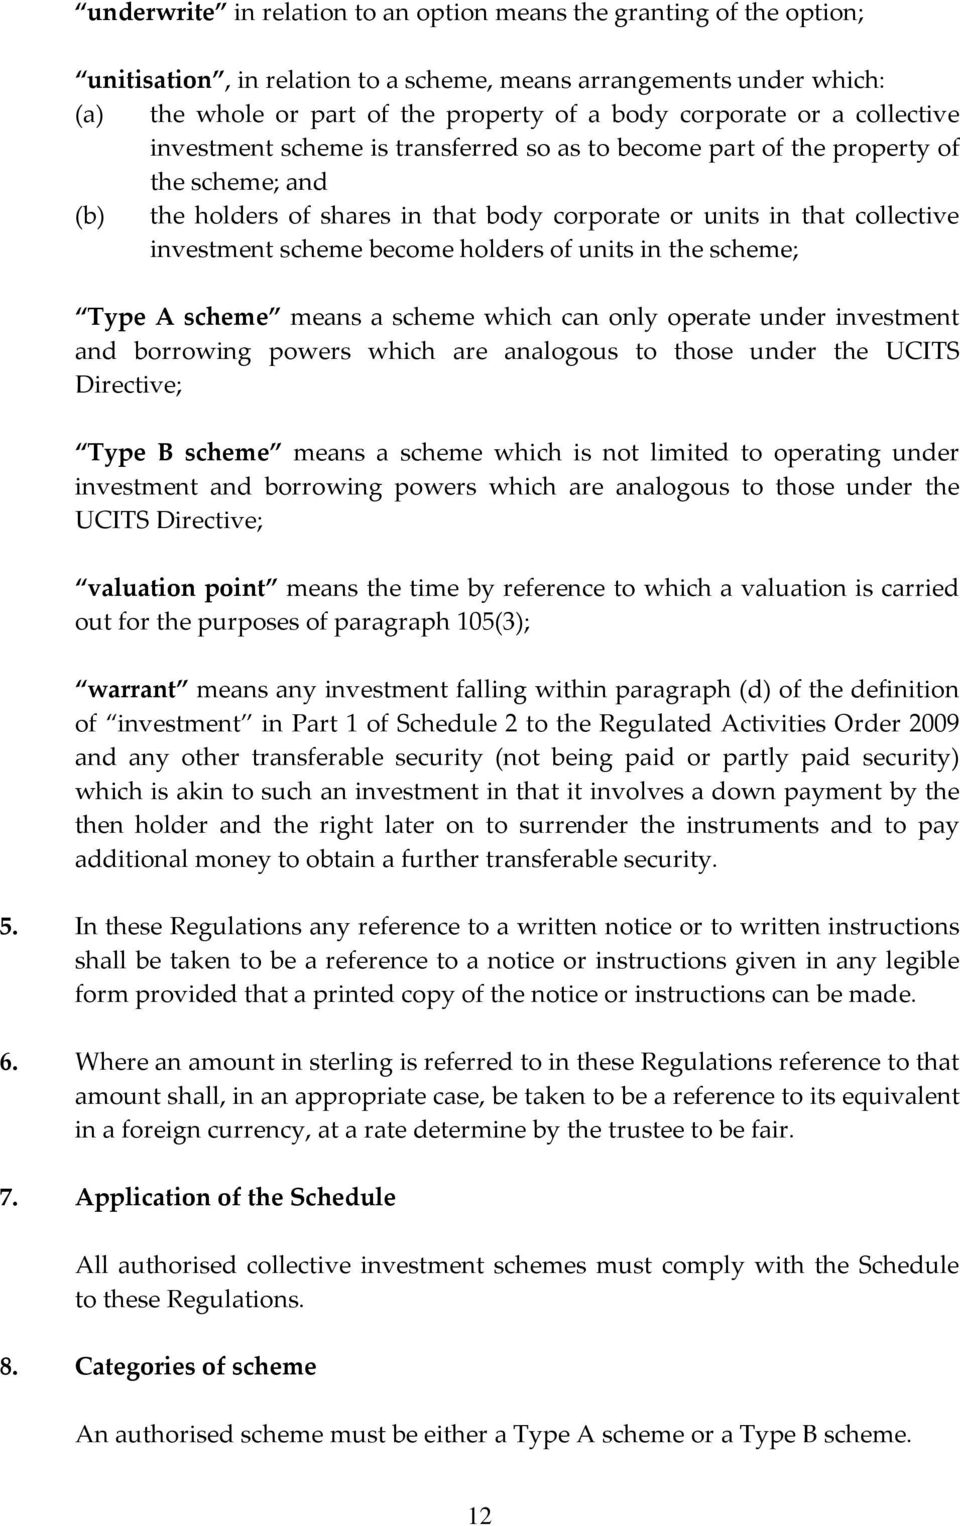 become holders of units in the scheme; Type A scheme means a scheme which can only operate under investment and borrowing powers which are analogous to those under the UCITS Directive; Type B scheme